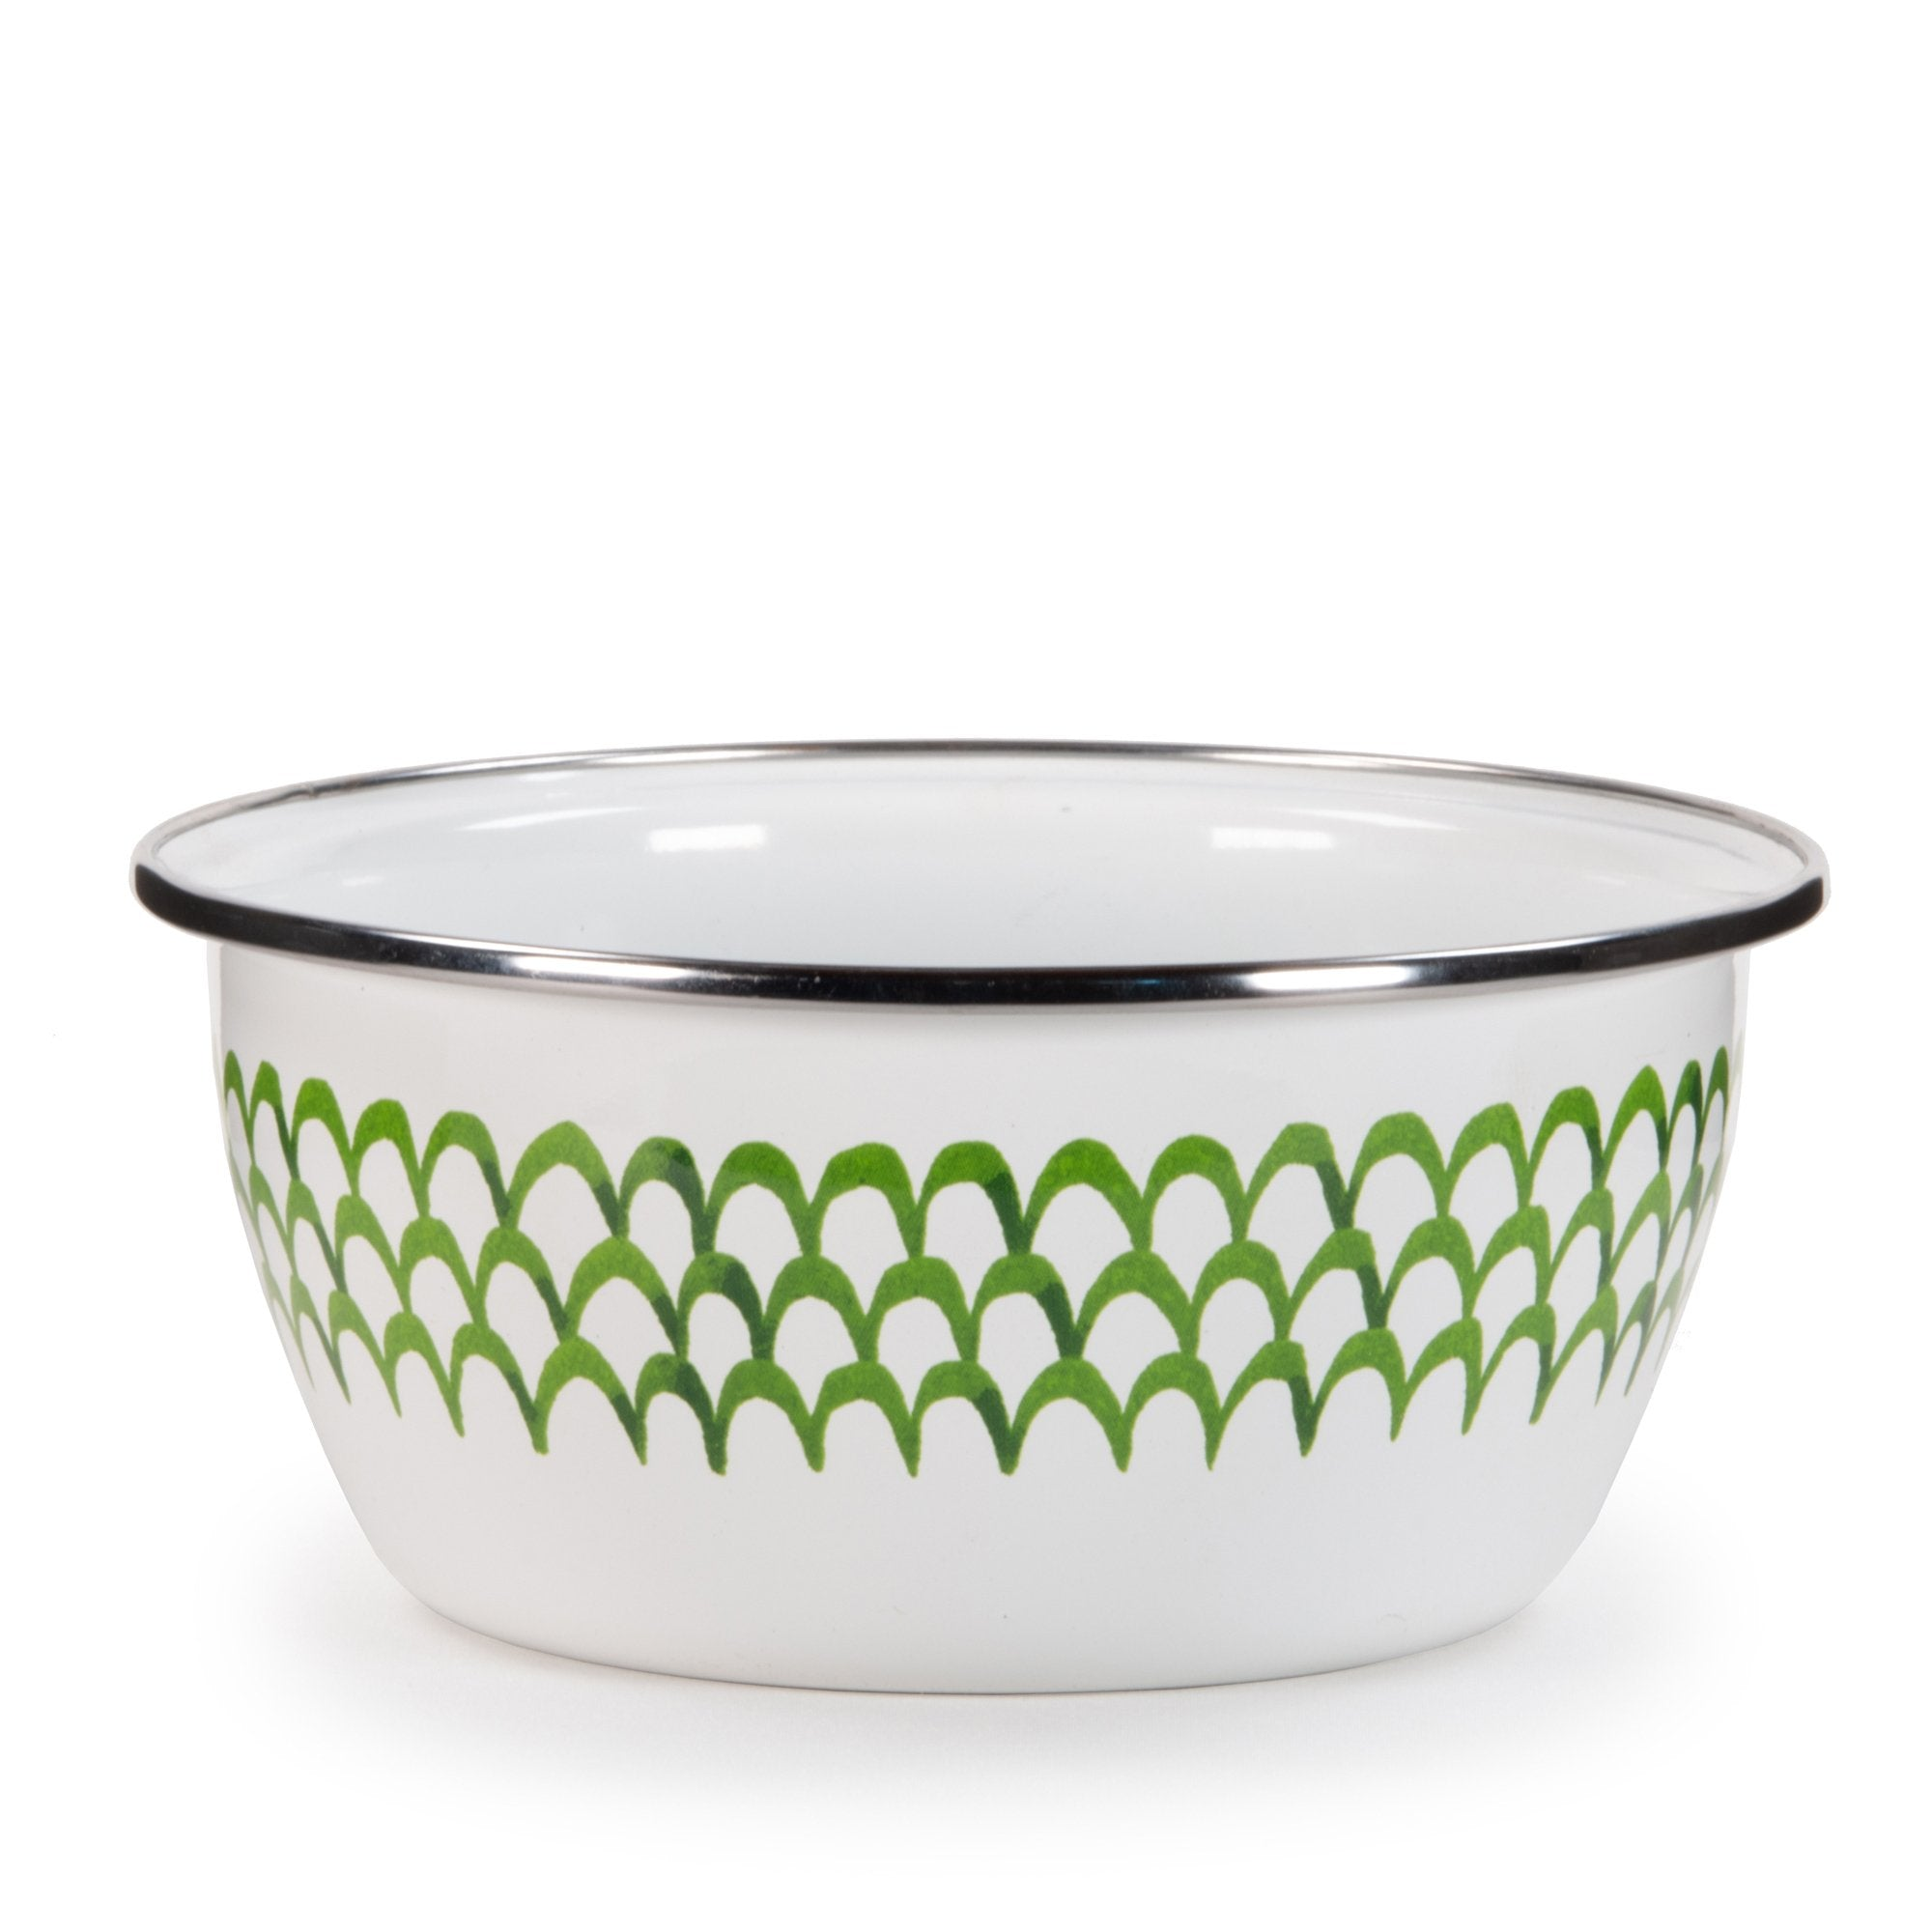 GS61 - Green Scallop Pattern - Salad Bowl